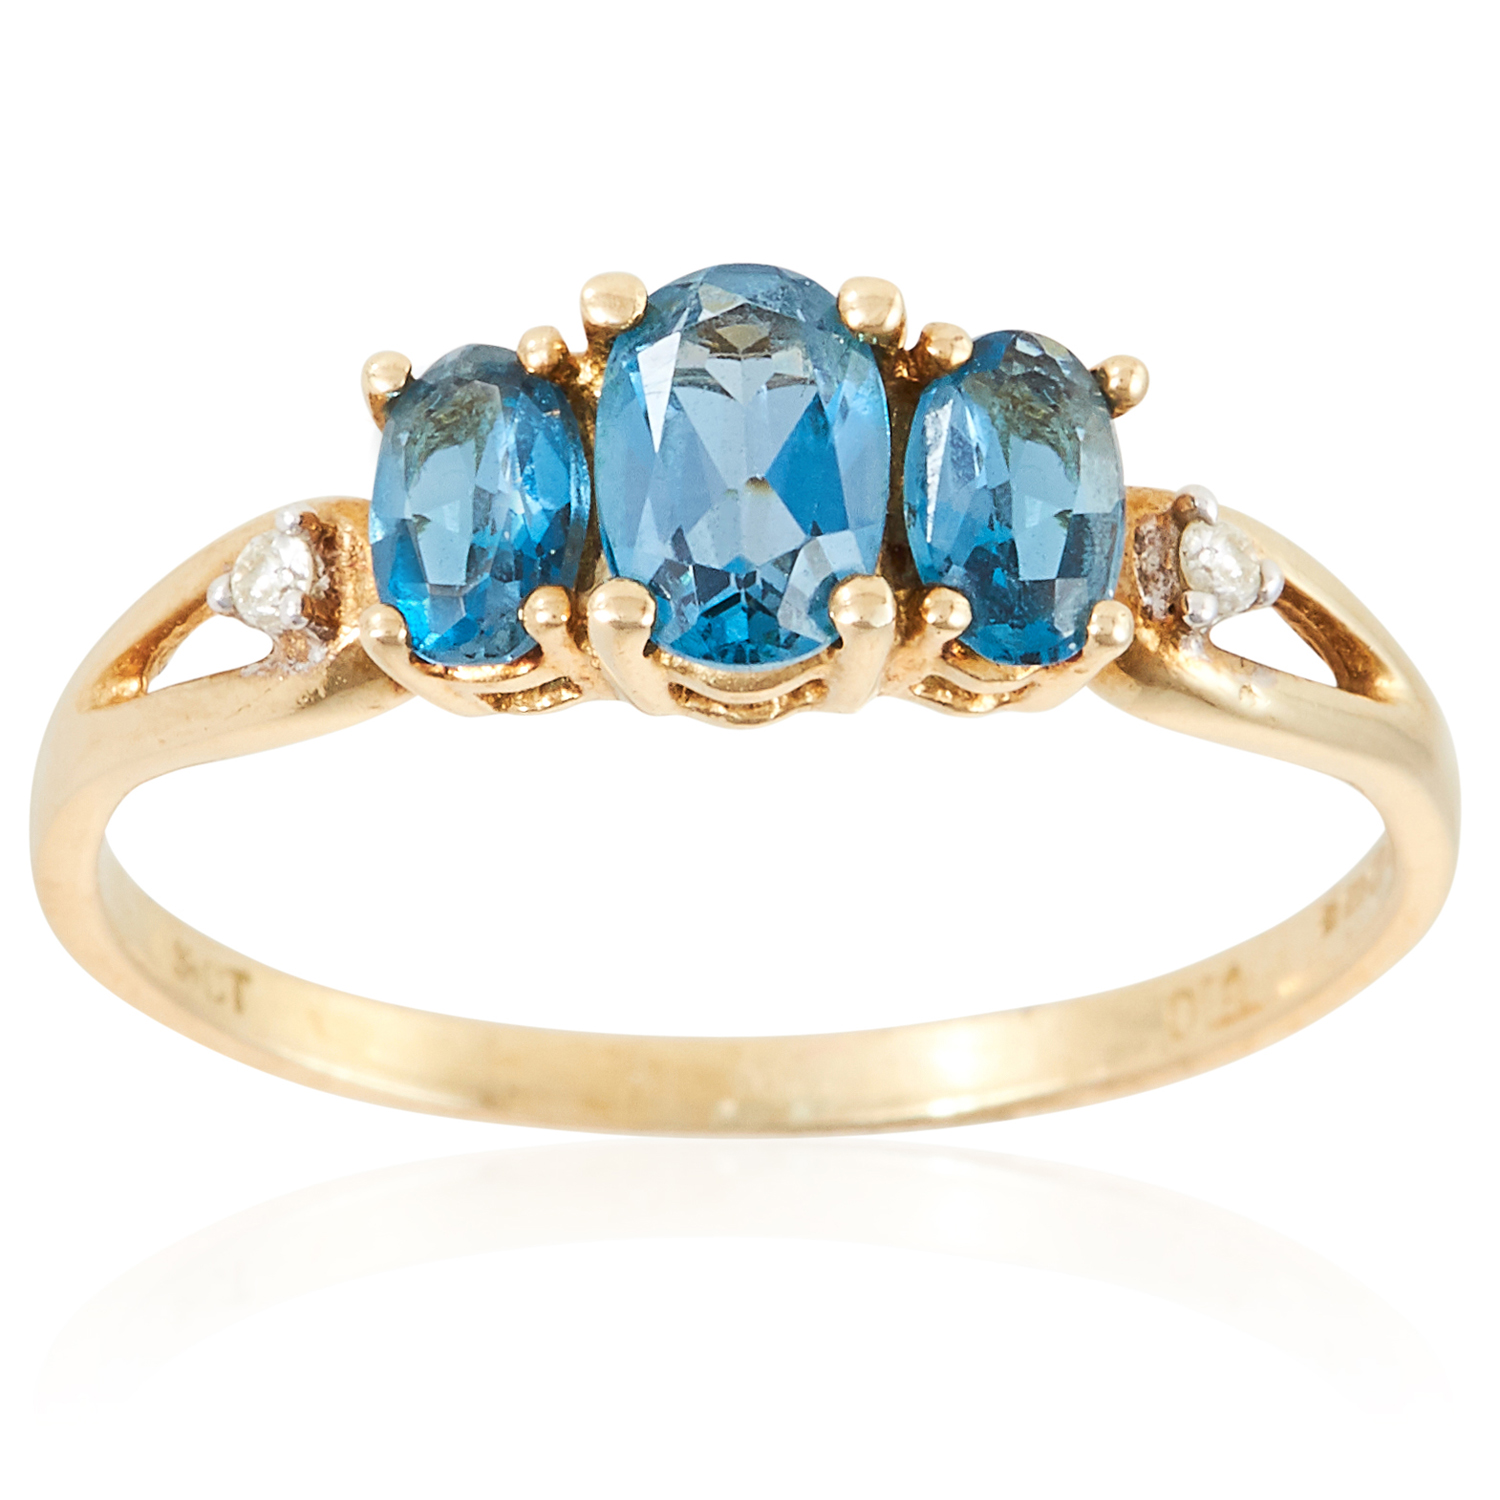 A TOPAZ AND DIAMOND RING in yellow gold, set with three oval cut topaz and two round cut diamonds,